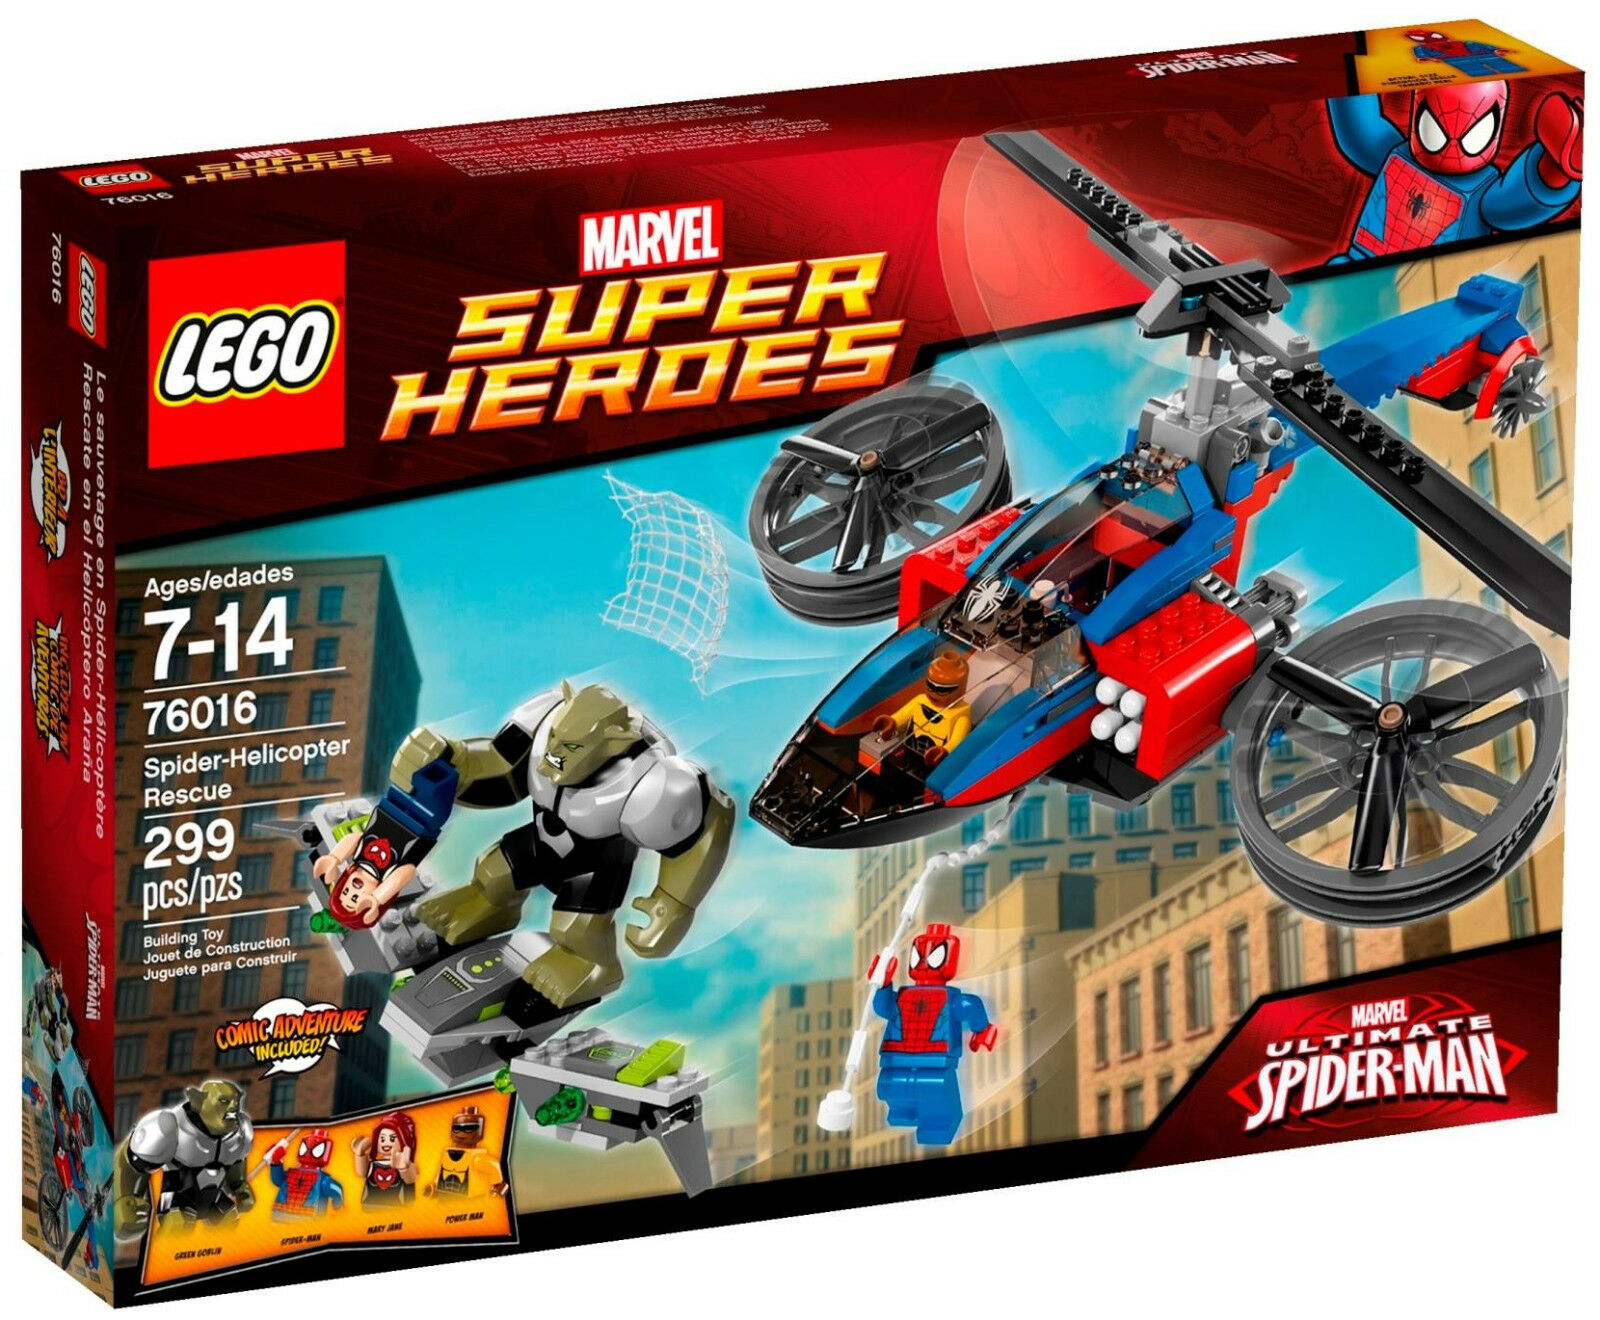 Lego Marvel Super Heroes 76016 Spider-Helicopter Rescue Spiderman 2014 NEW Seale